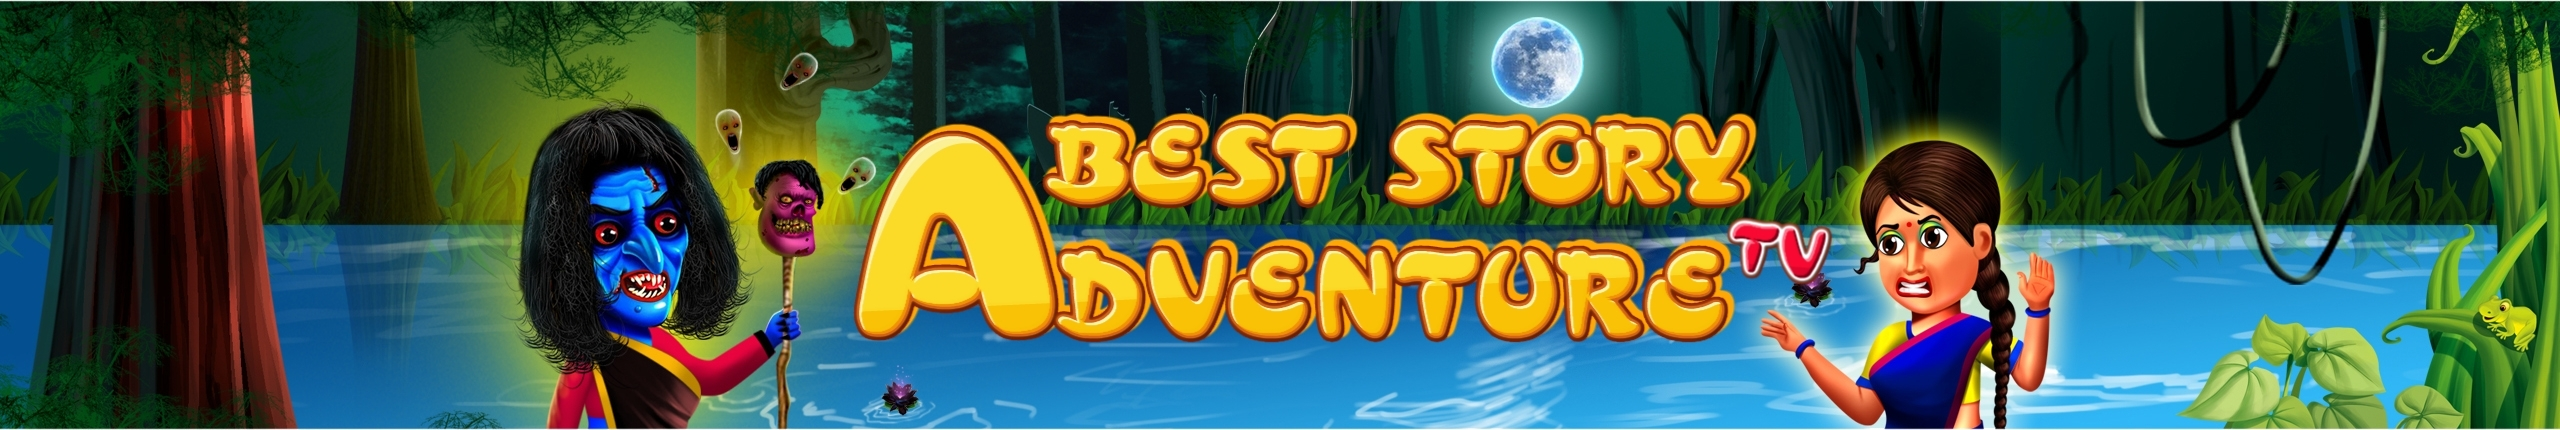 Best Story Adventure Tv (@beststoryadventure) Cover Image